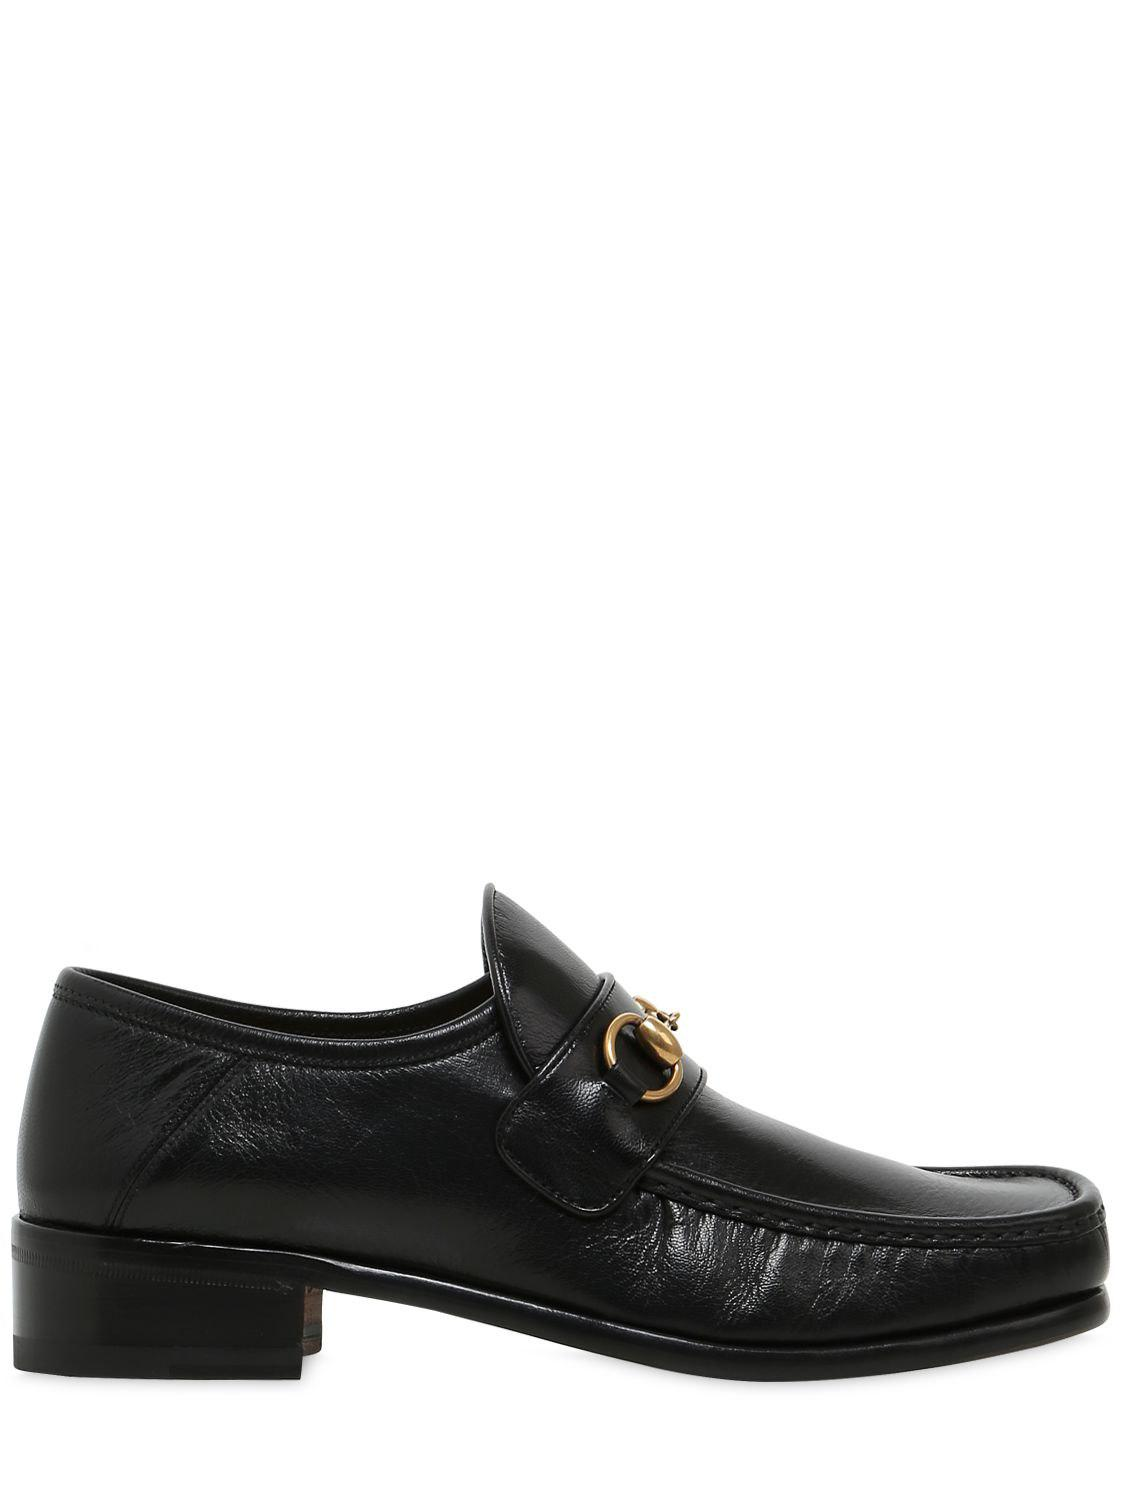 gucci horsebit square toe leather loafers in black for men lyst. Black Bedroom Furniture Sets. Home Design Ideas